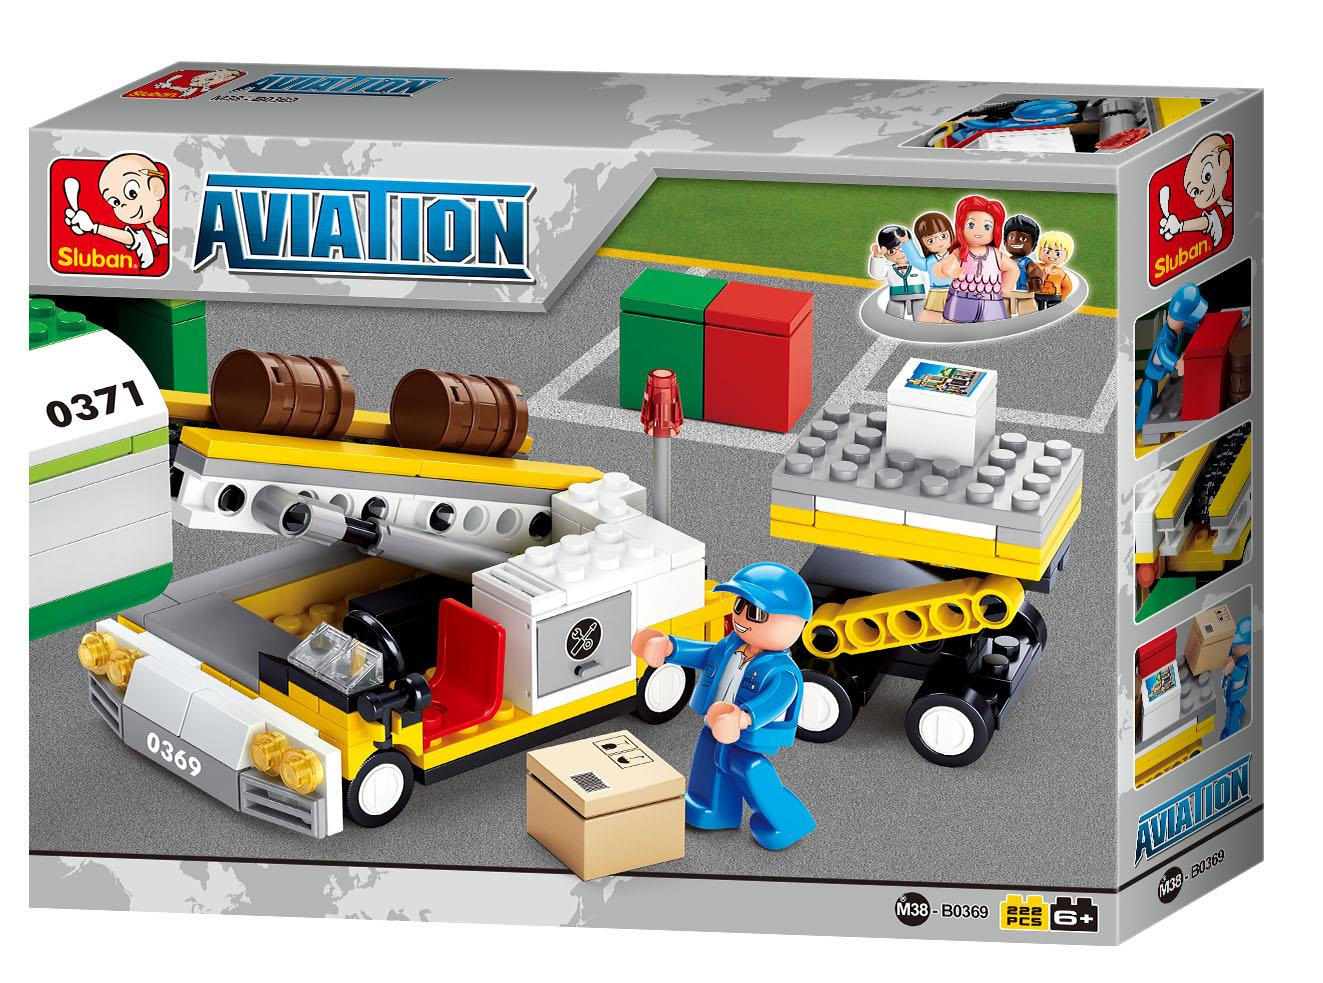 SLUBAN B0369: Aviation - Aircraft Carco (222pcs) 100% Lego Compatible